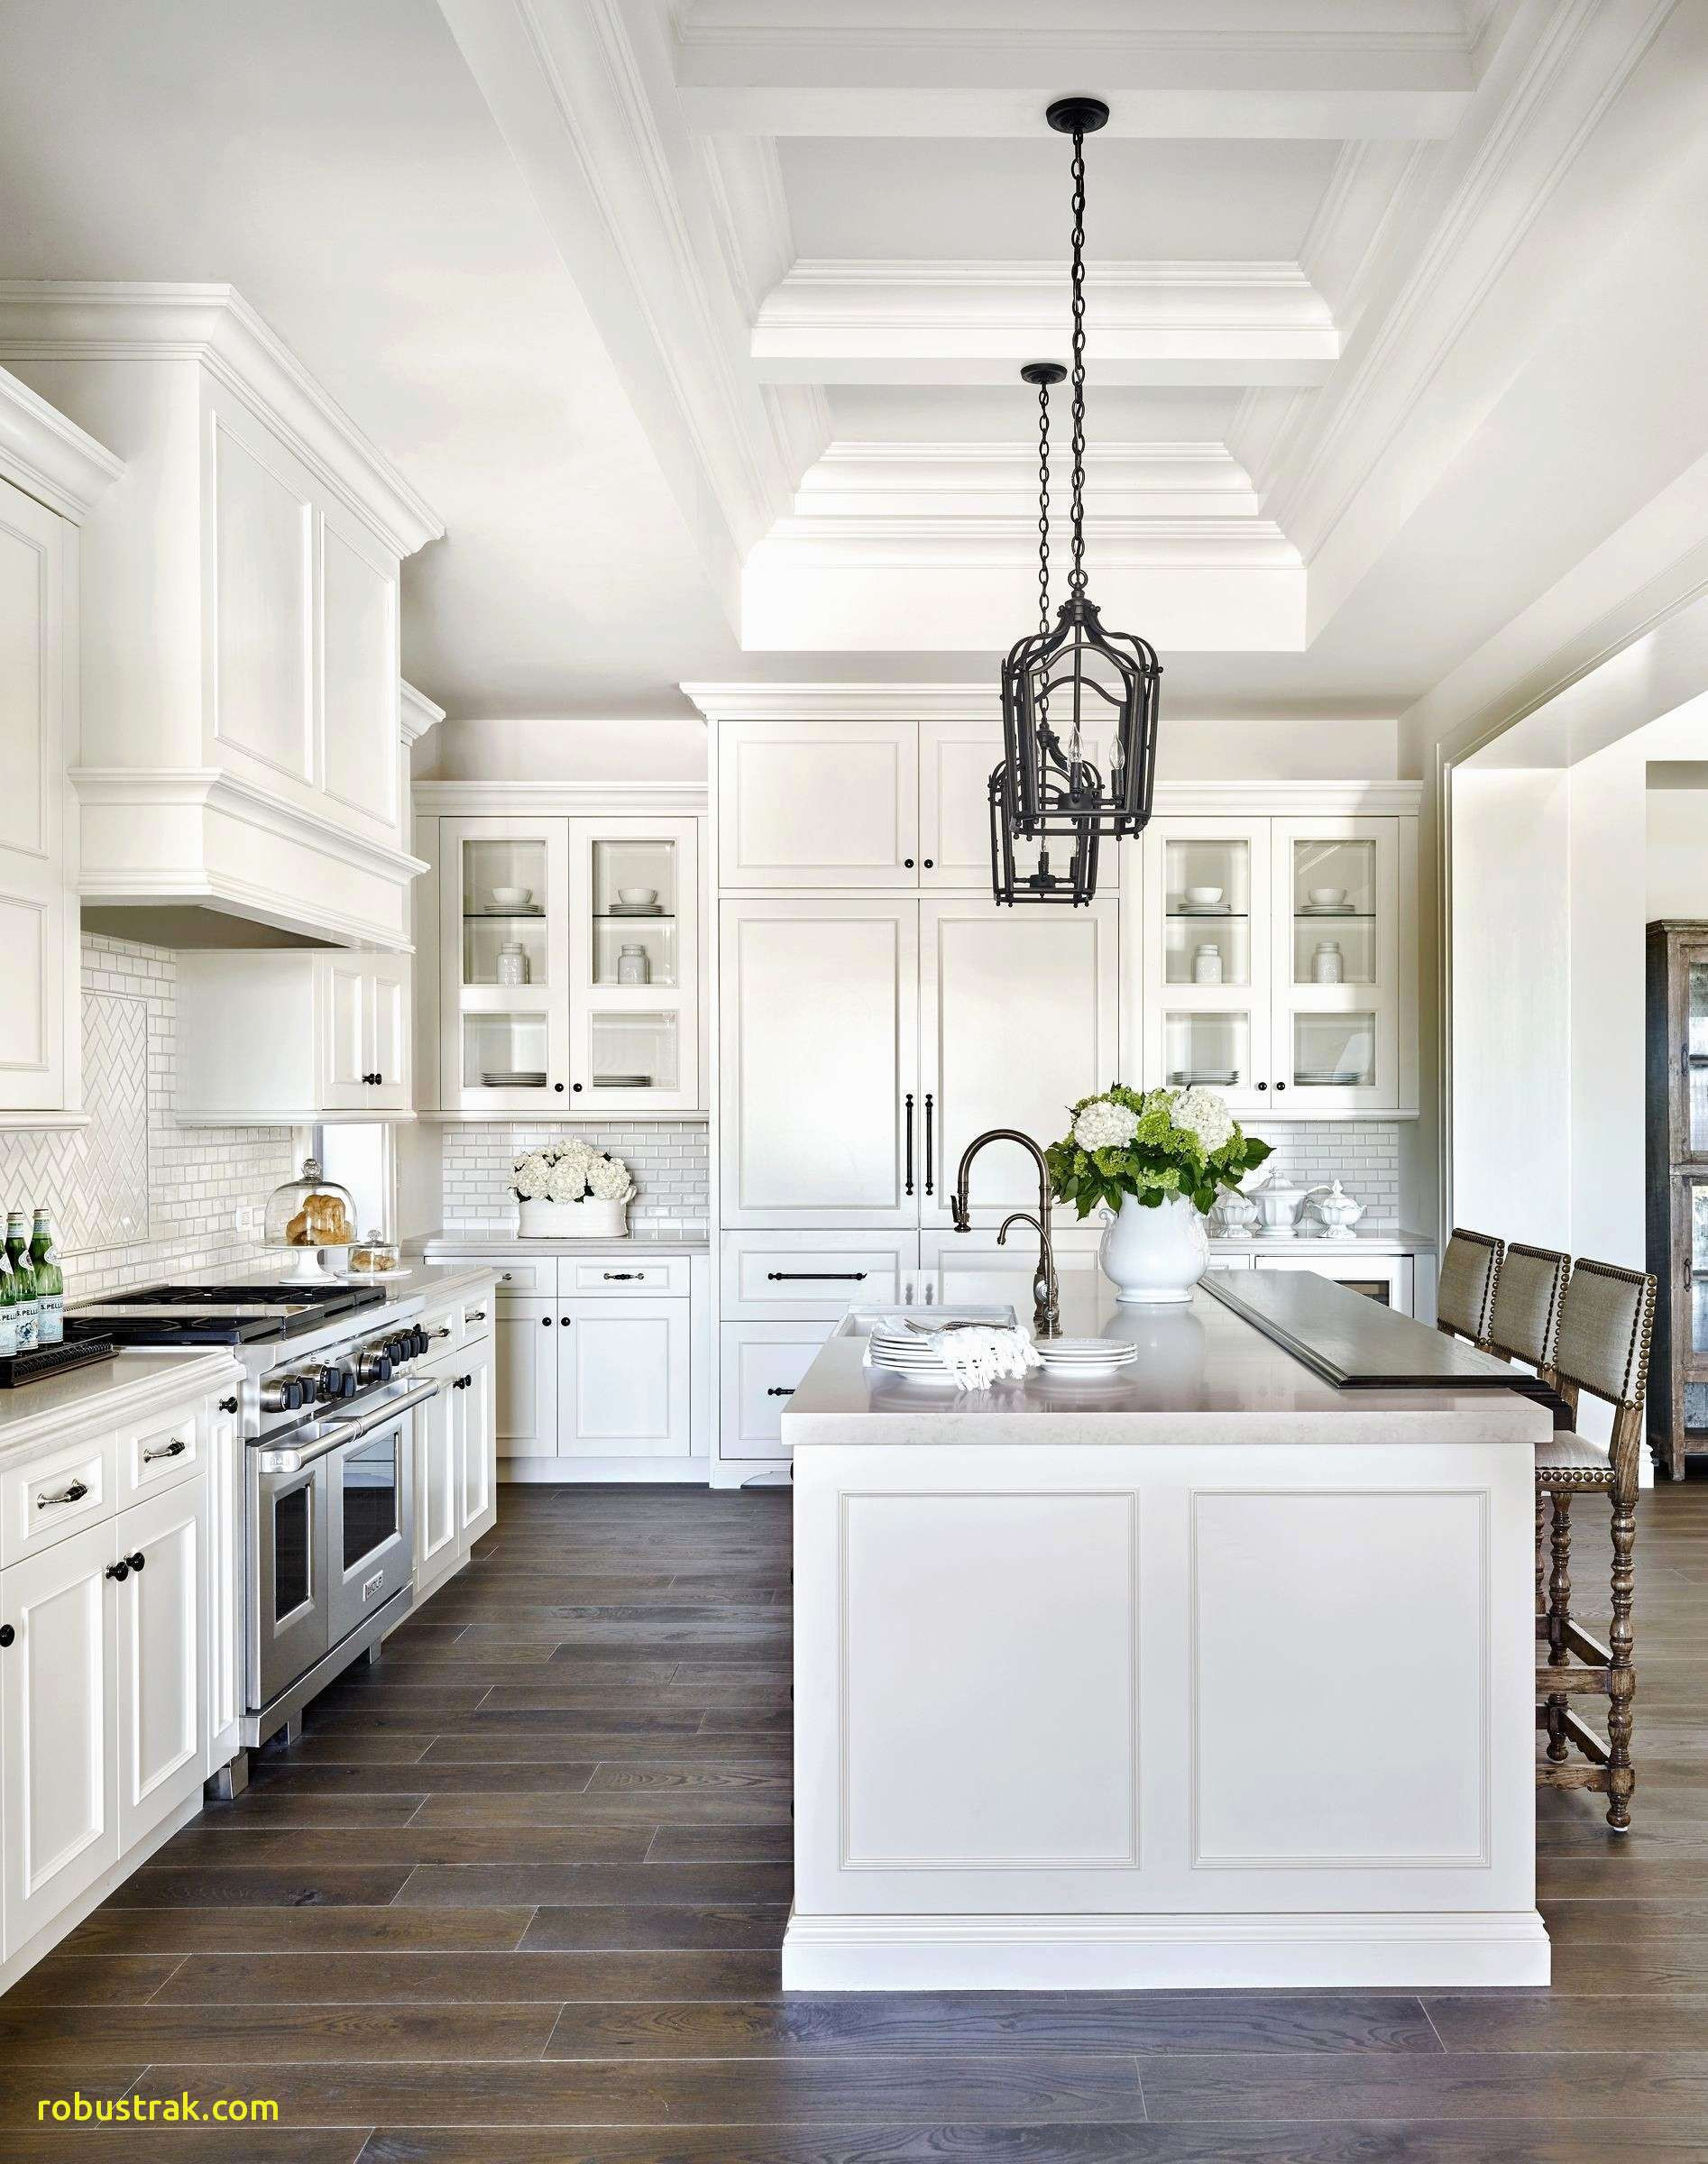 hardwood floor gallery of magnificent wood floor in kitchen and kitchen and bath tile luxury throughout wood floor in kitchen chic wood floor in kitchen on beautiful red and black kitchen